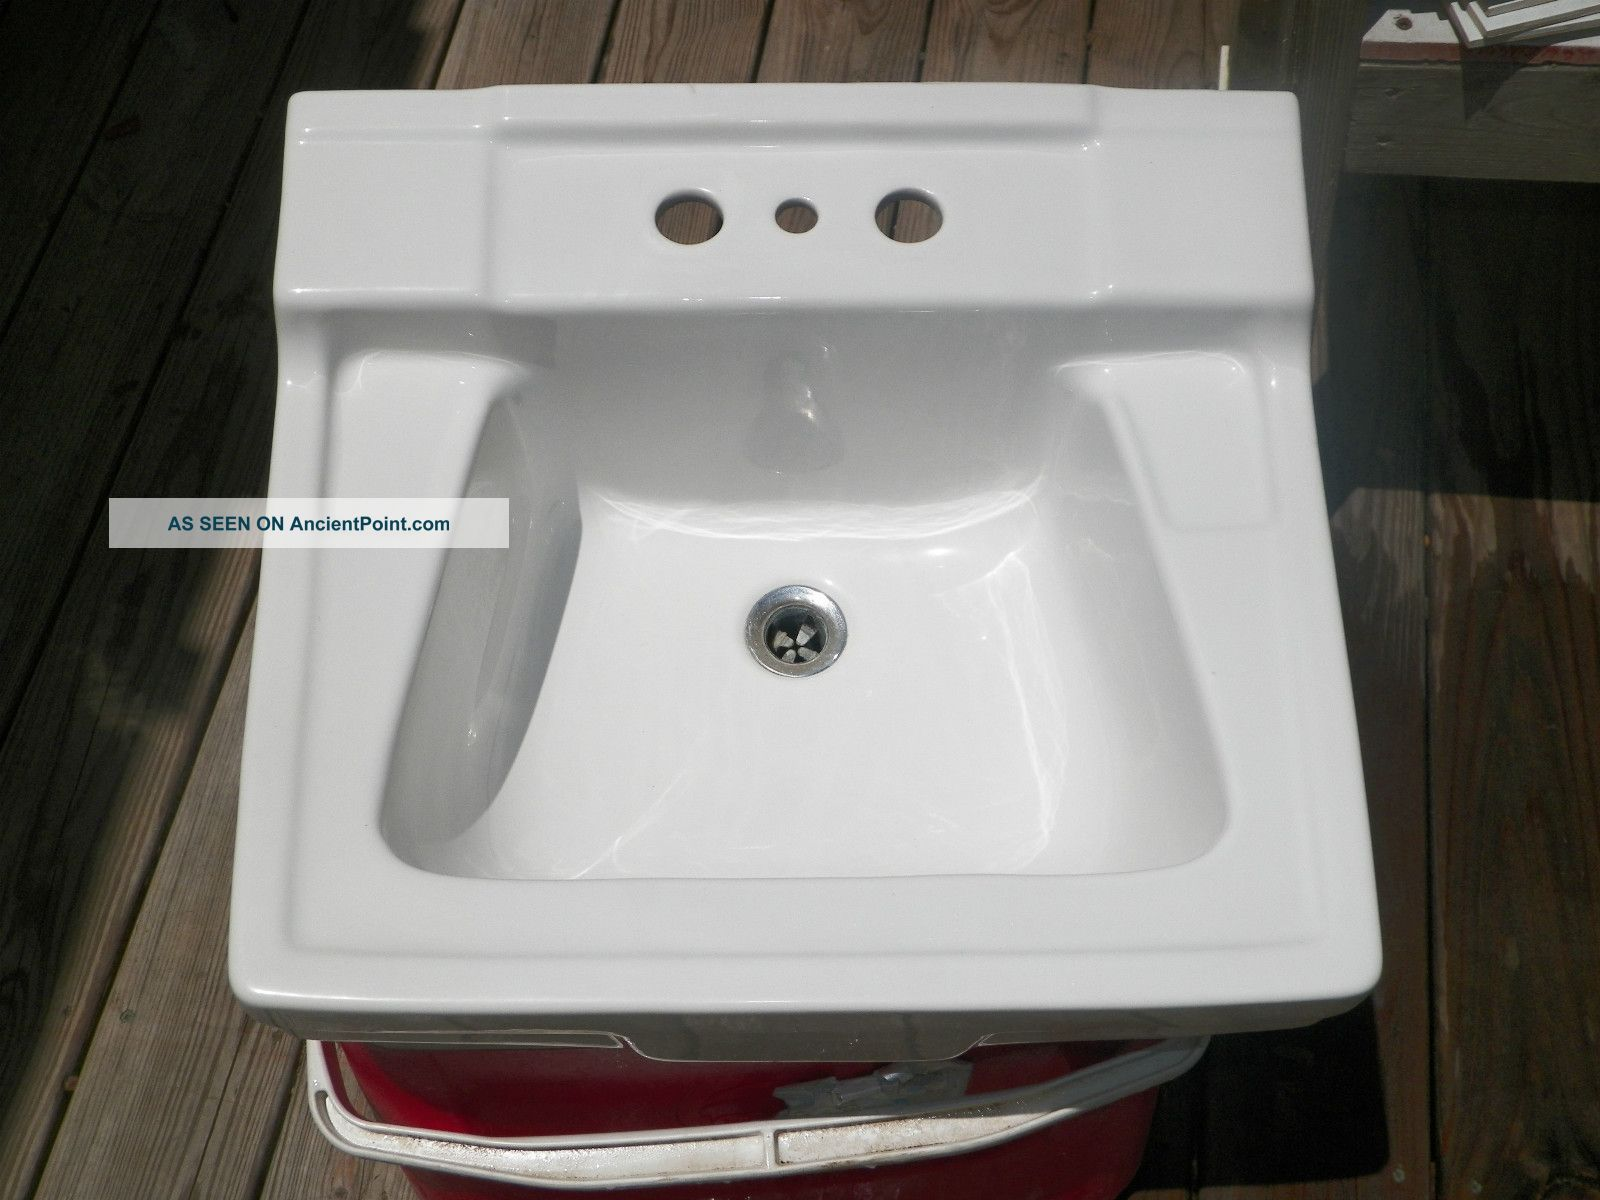 1962 Gerber Wall Mount Porcelain Sink With Mounting Bracket. Sinks photo